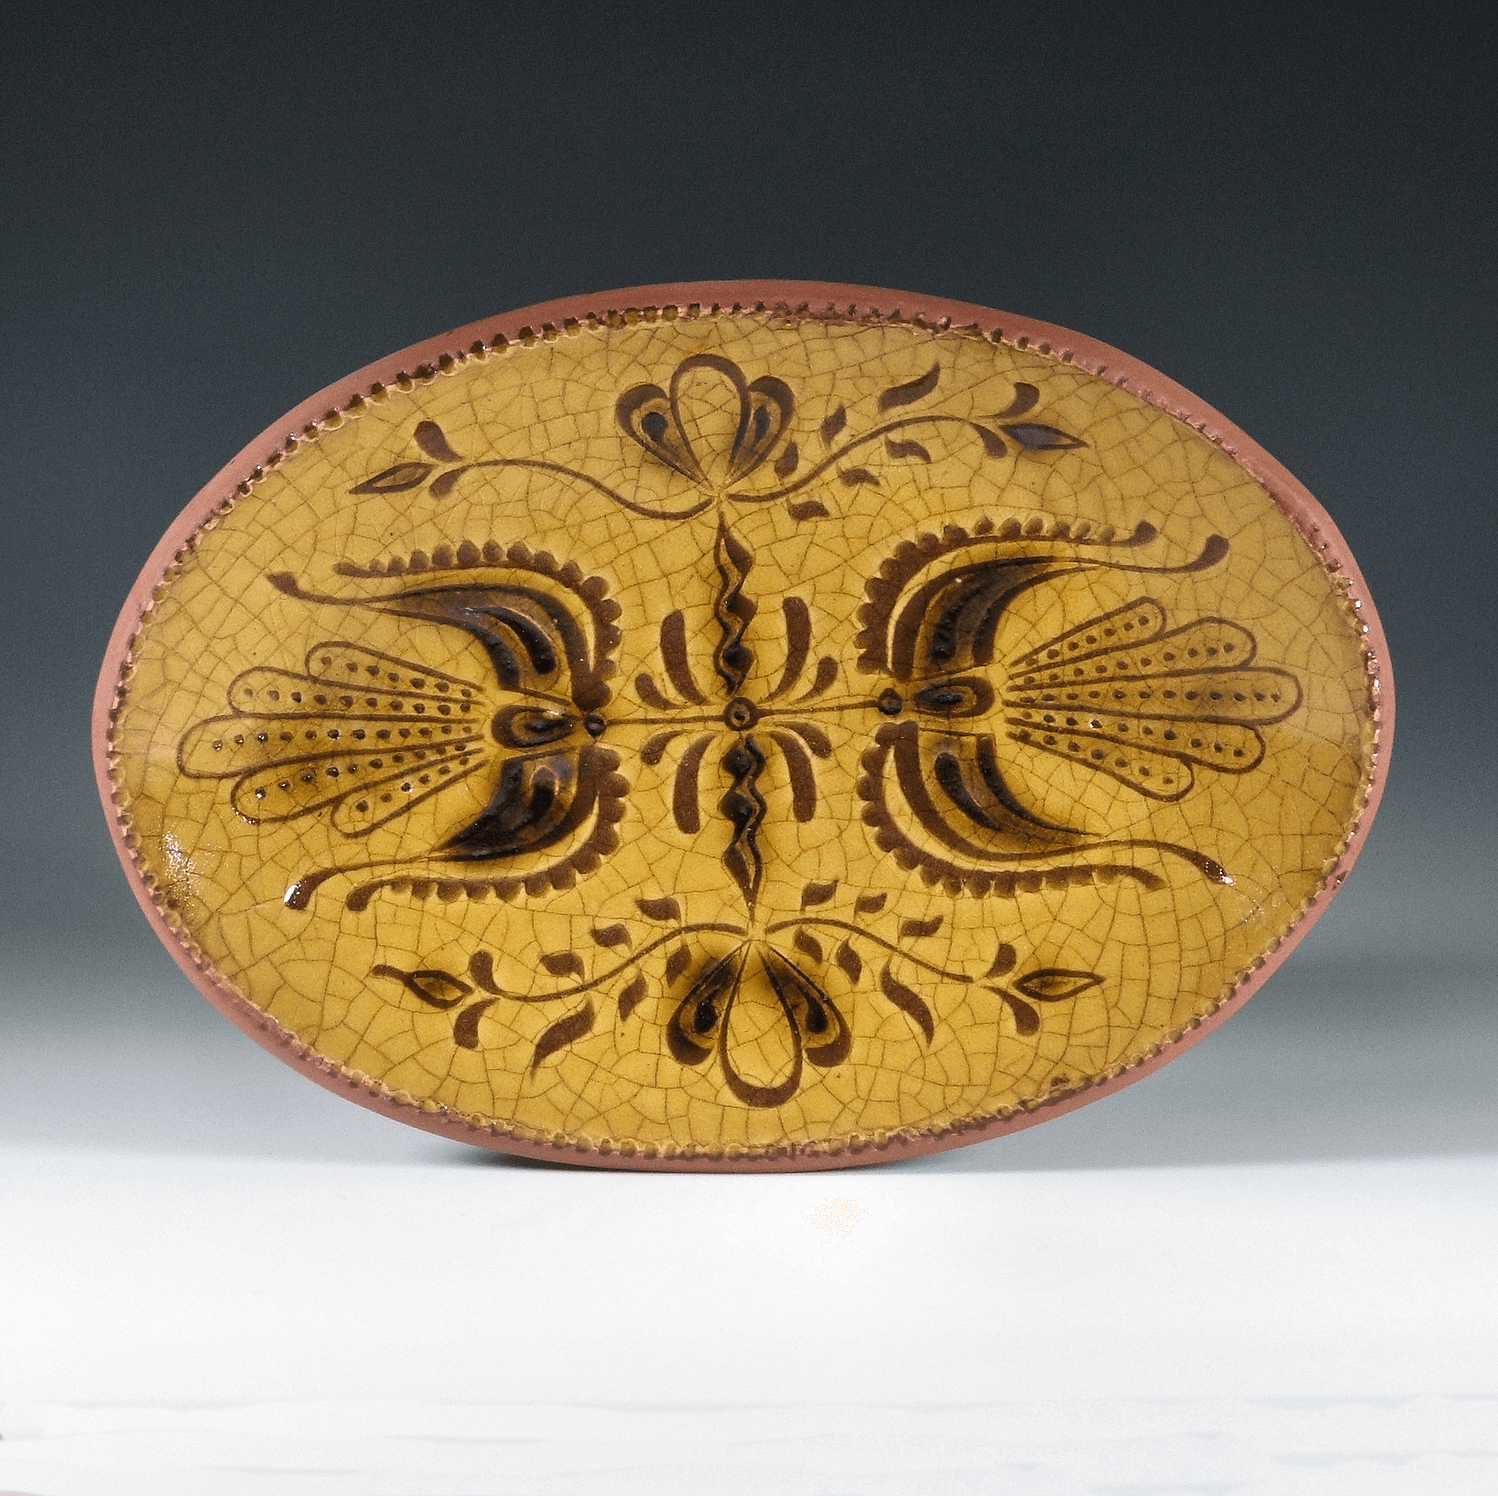 Oval Plate, Sgraffito, 2 Tulips